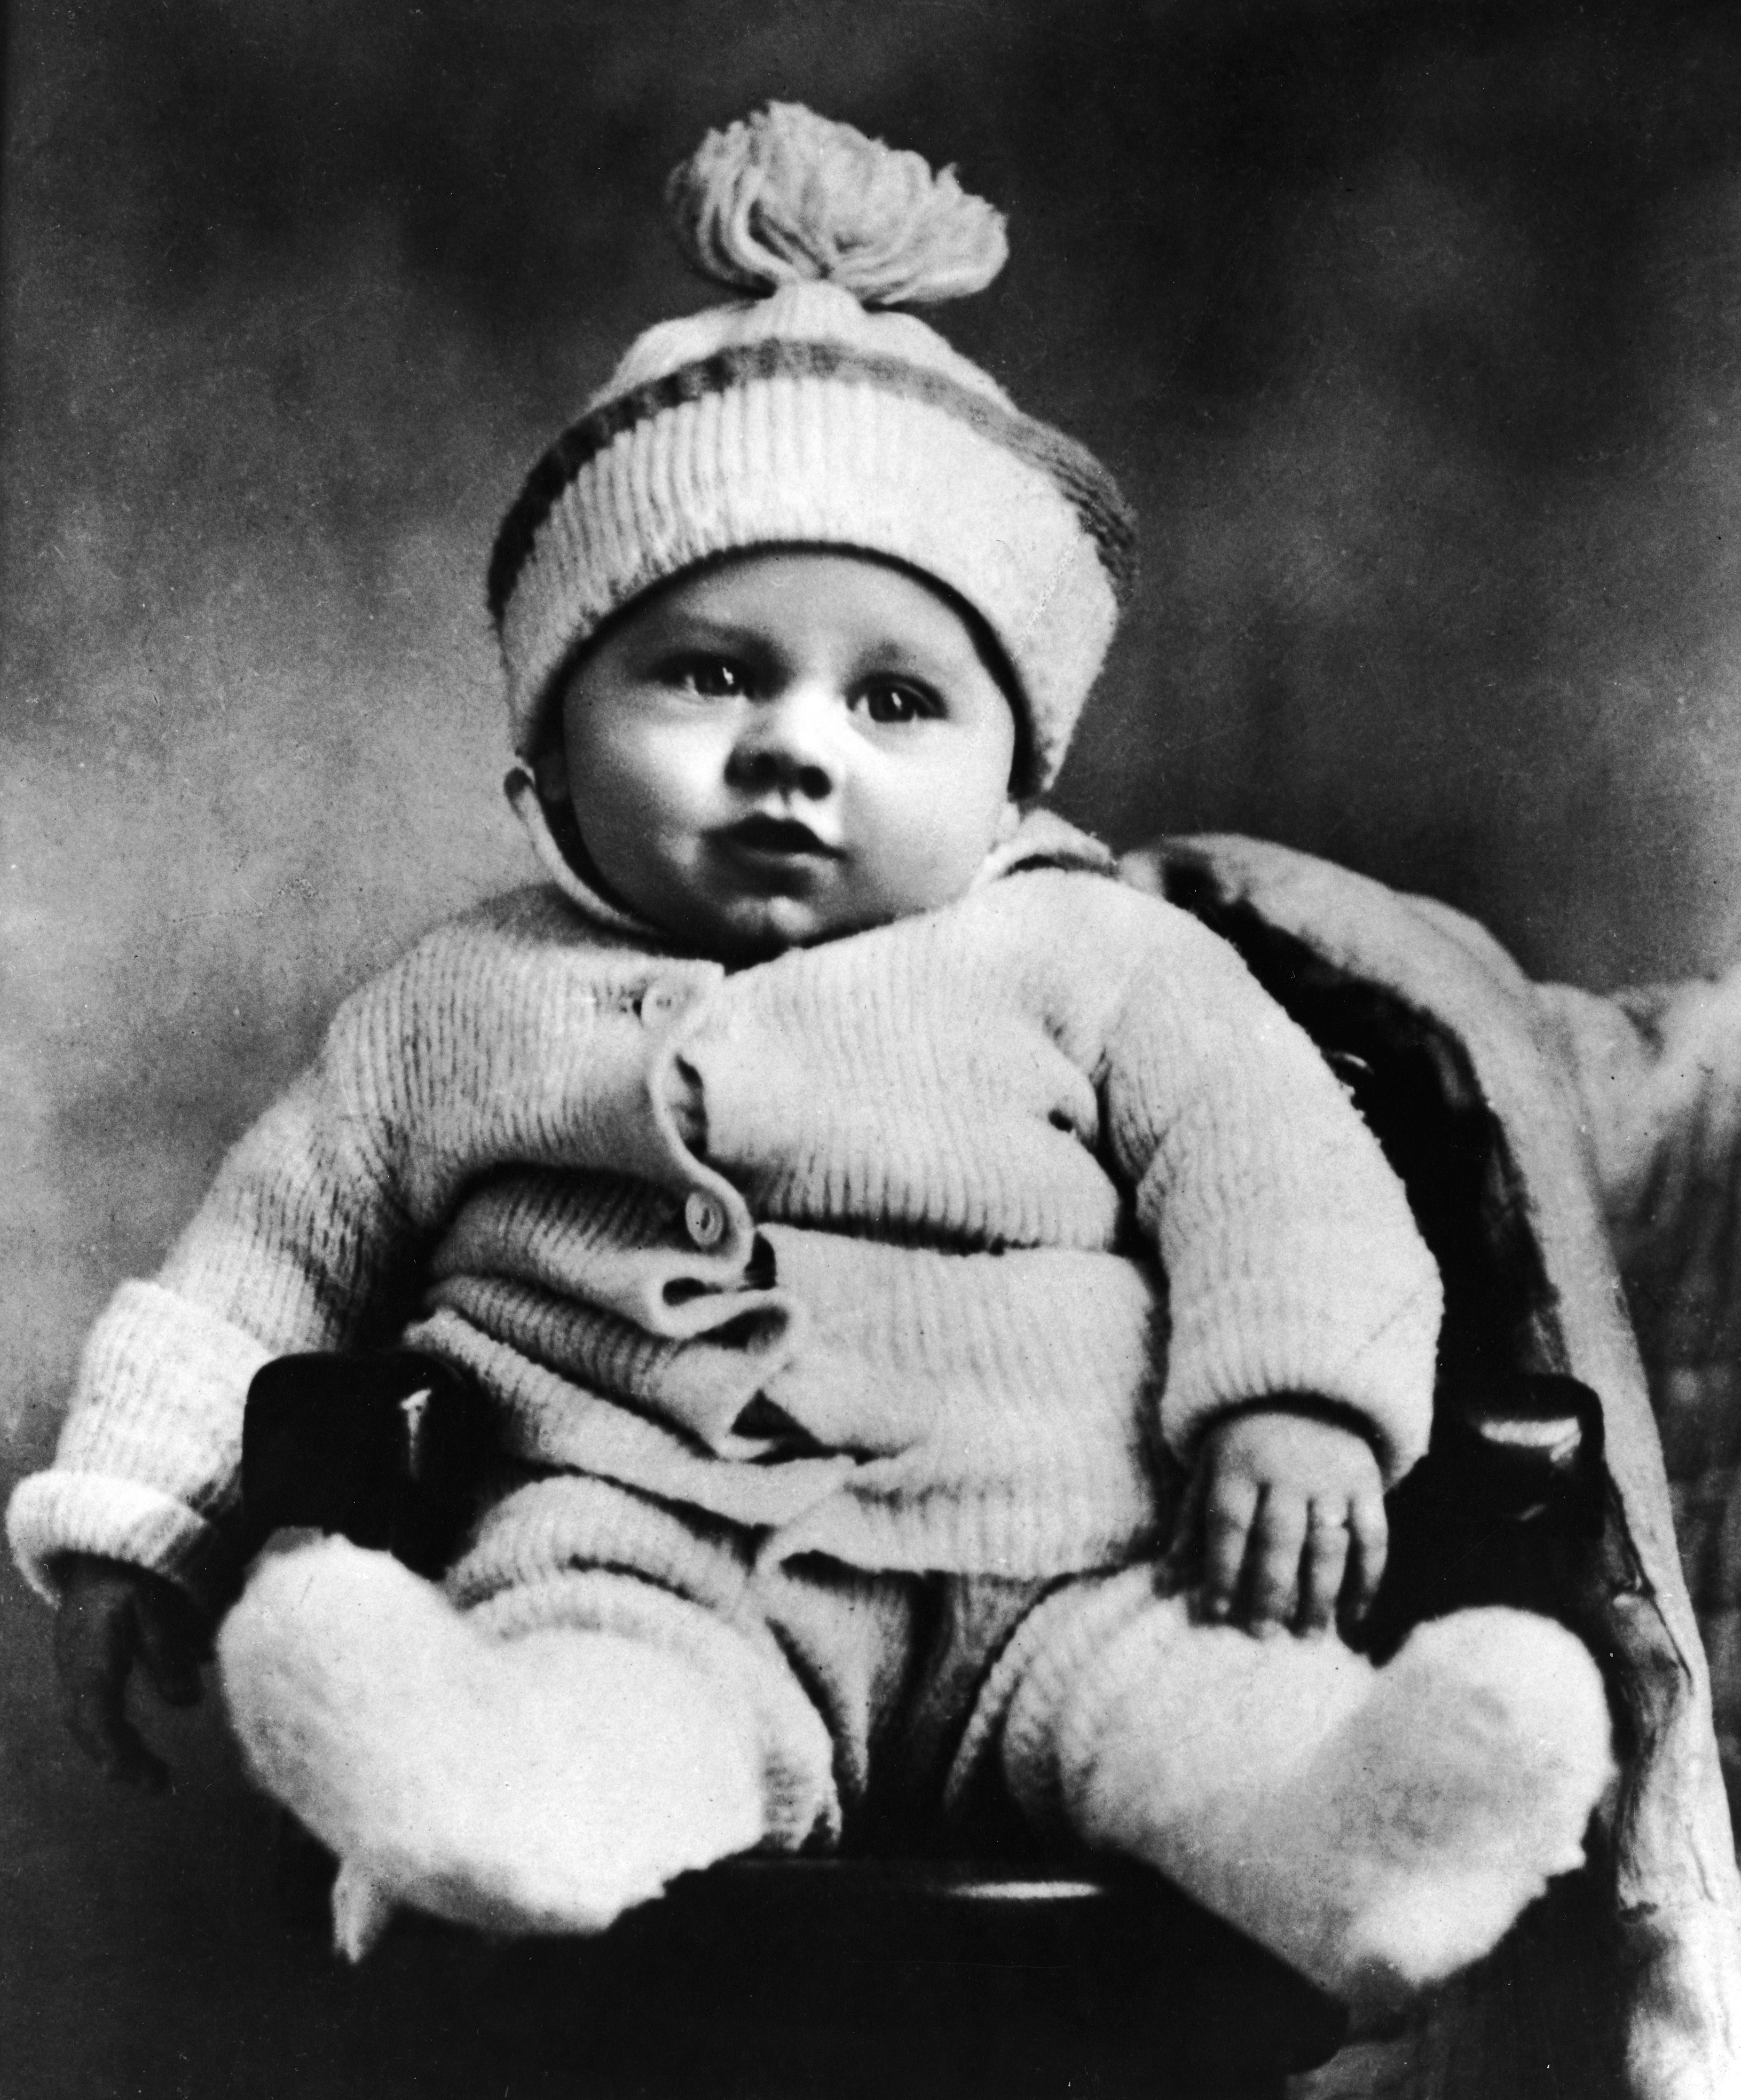 Mickey Rooney at five months old in 1921.